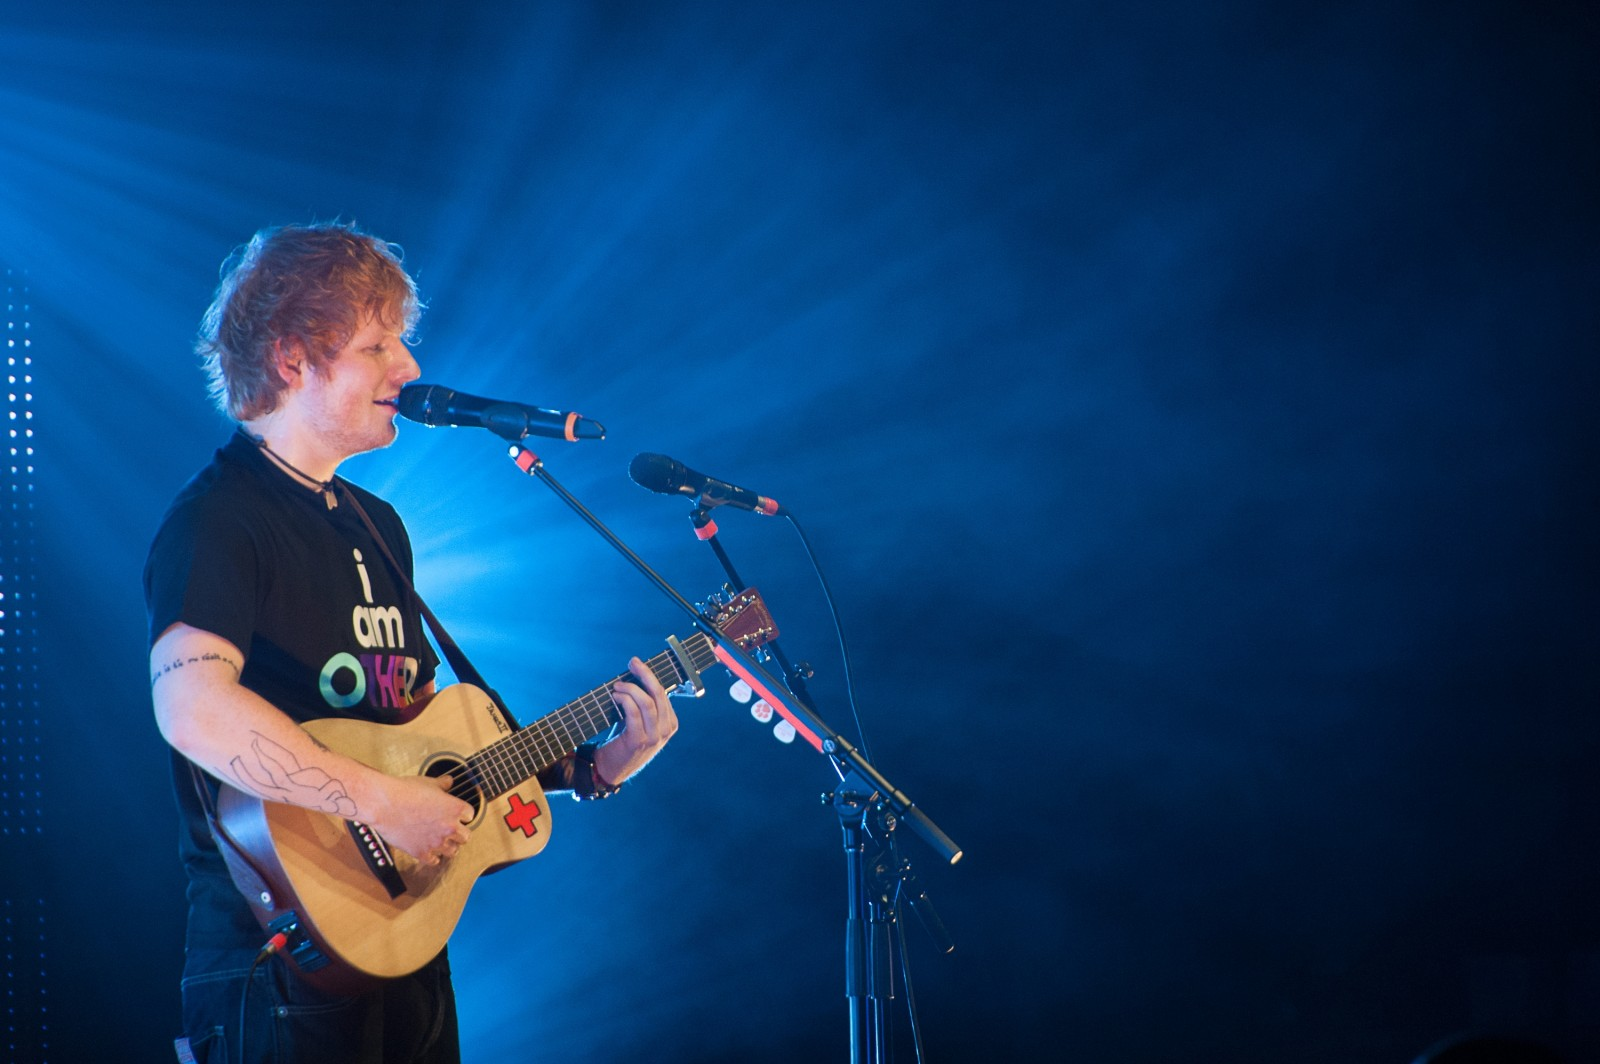 NEW MUSIC from ED SHEERAN - LISTEN